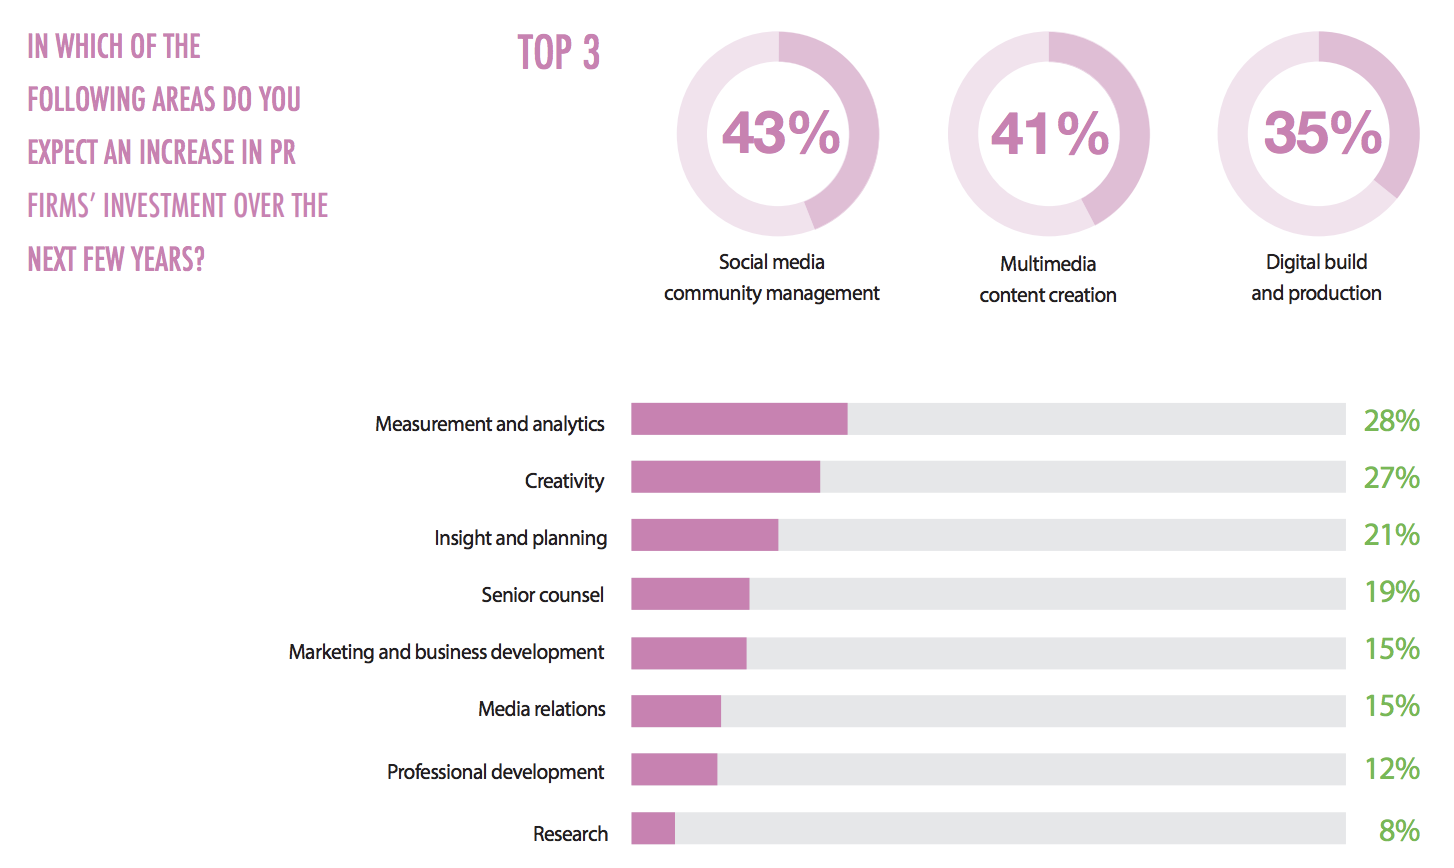 social media community management top for PR in the future